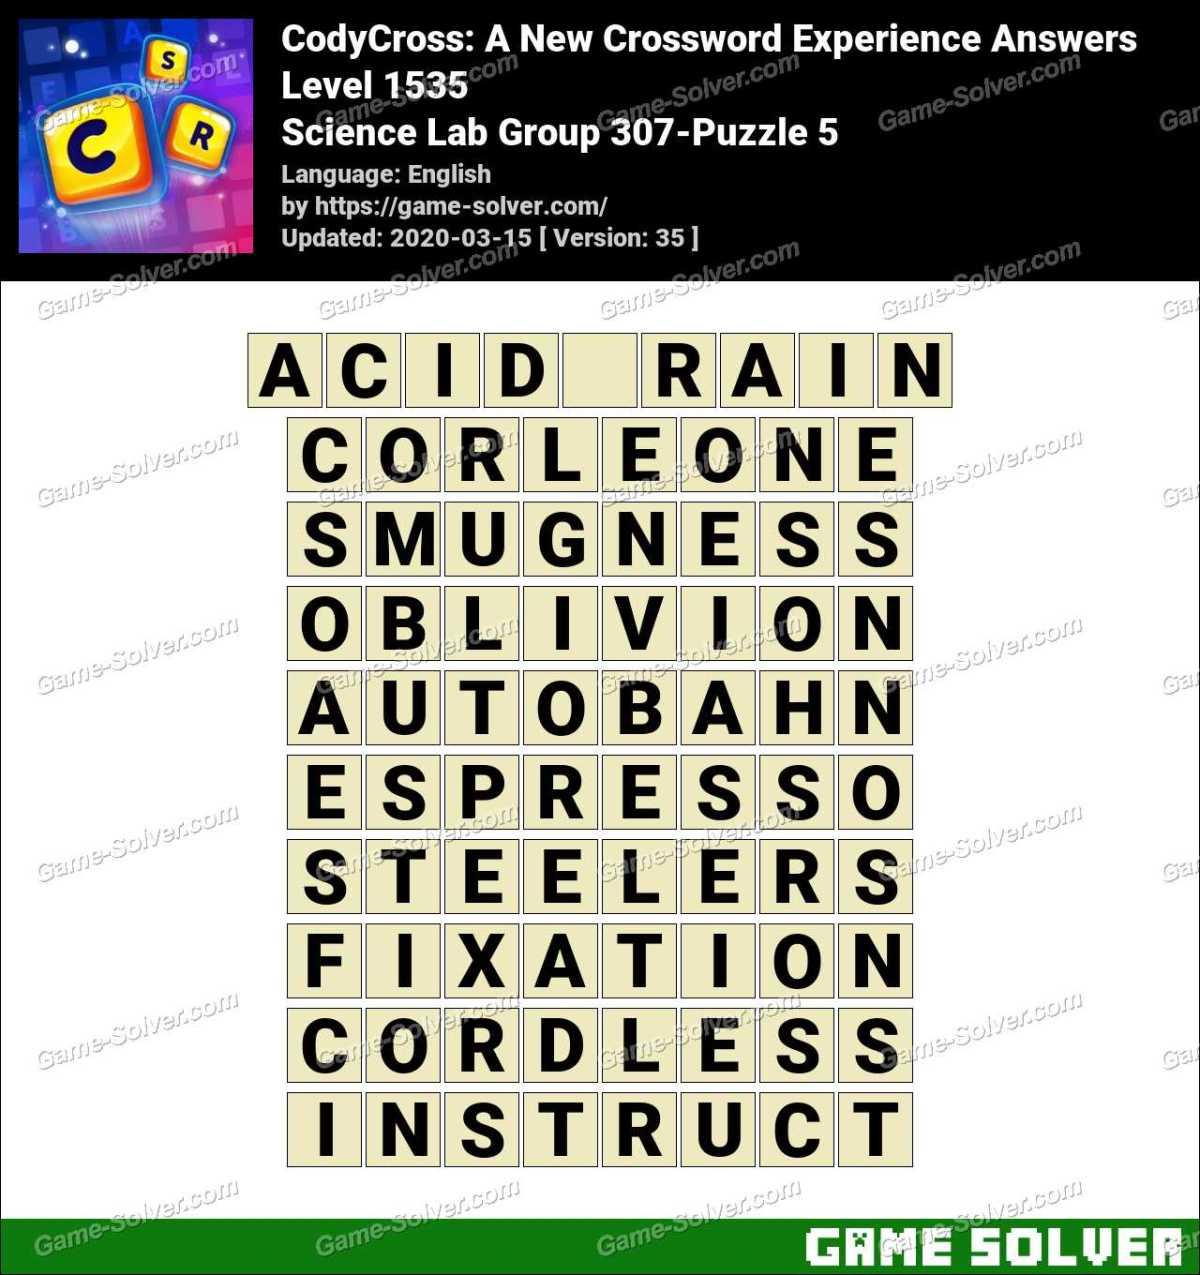 CodyCross Science Lab Group 307-Puzzle 5 Answers